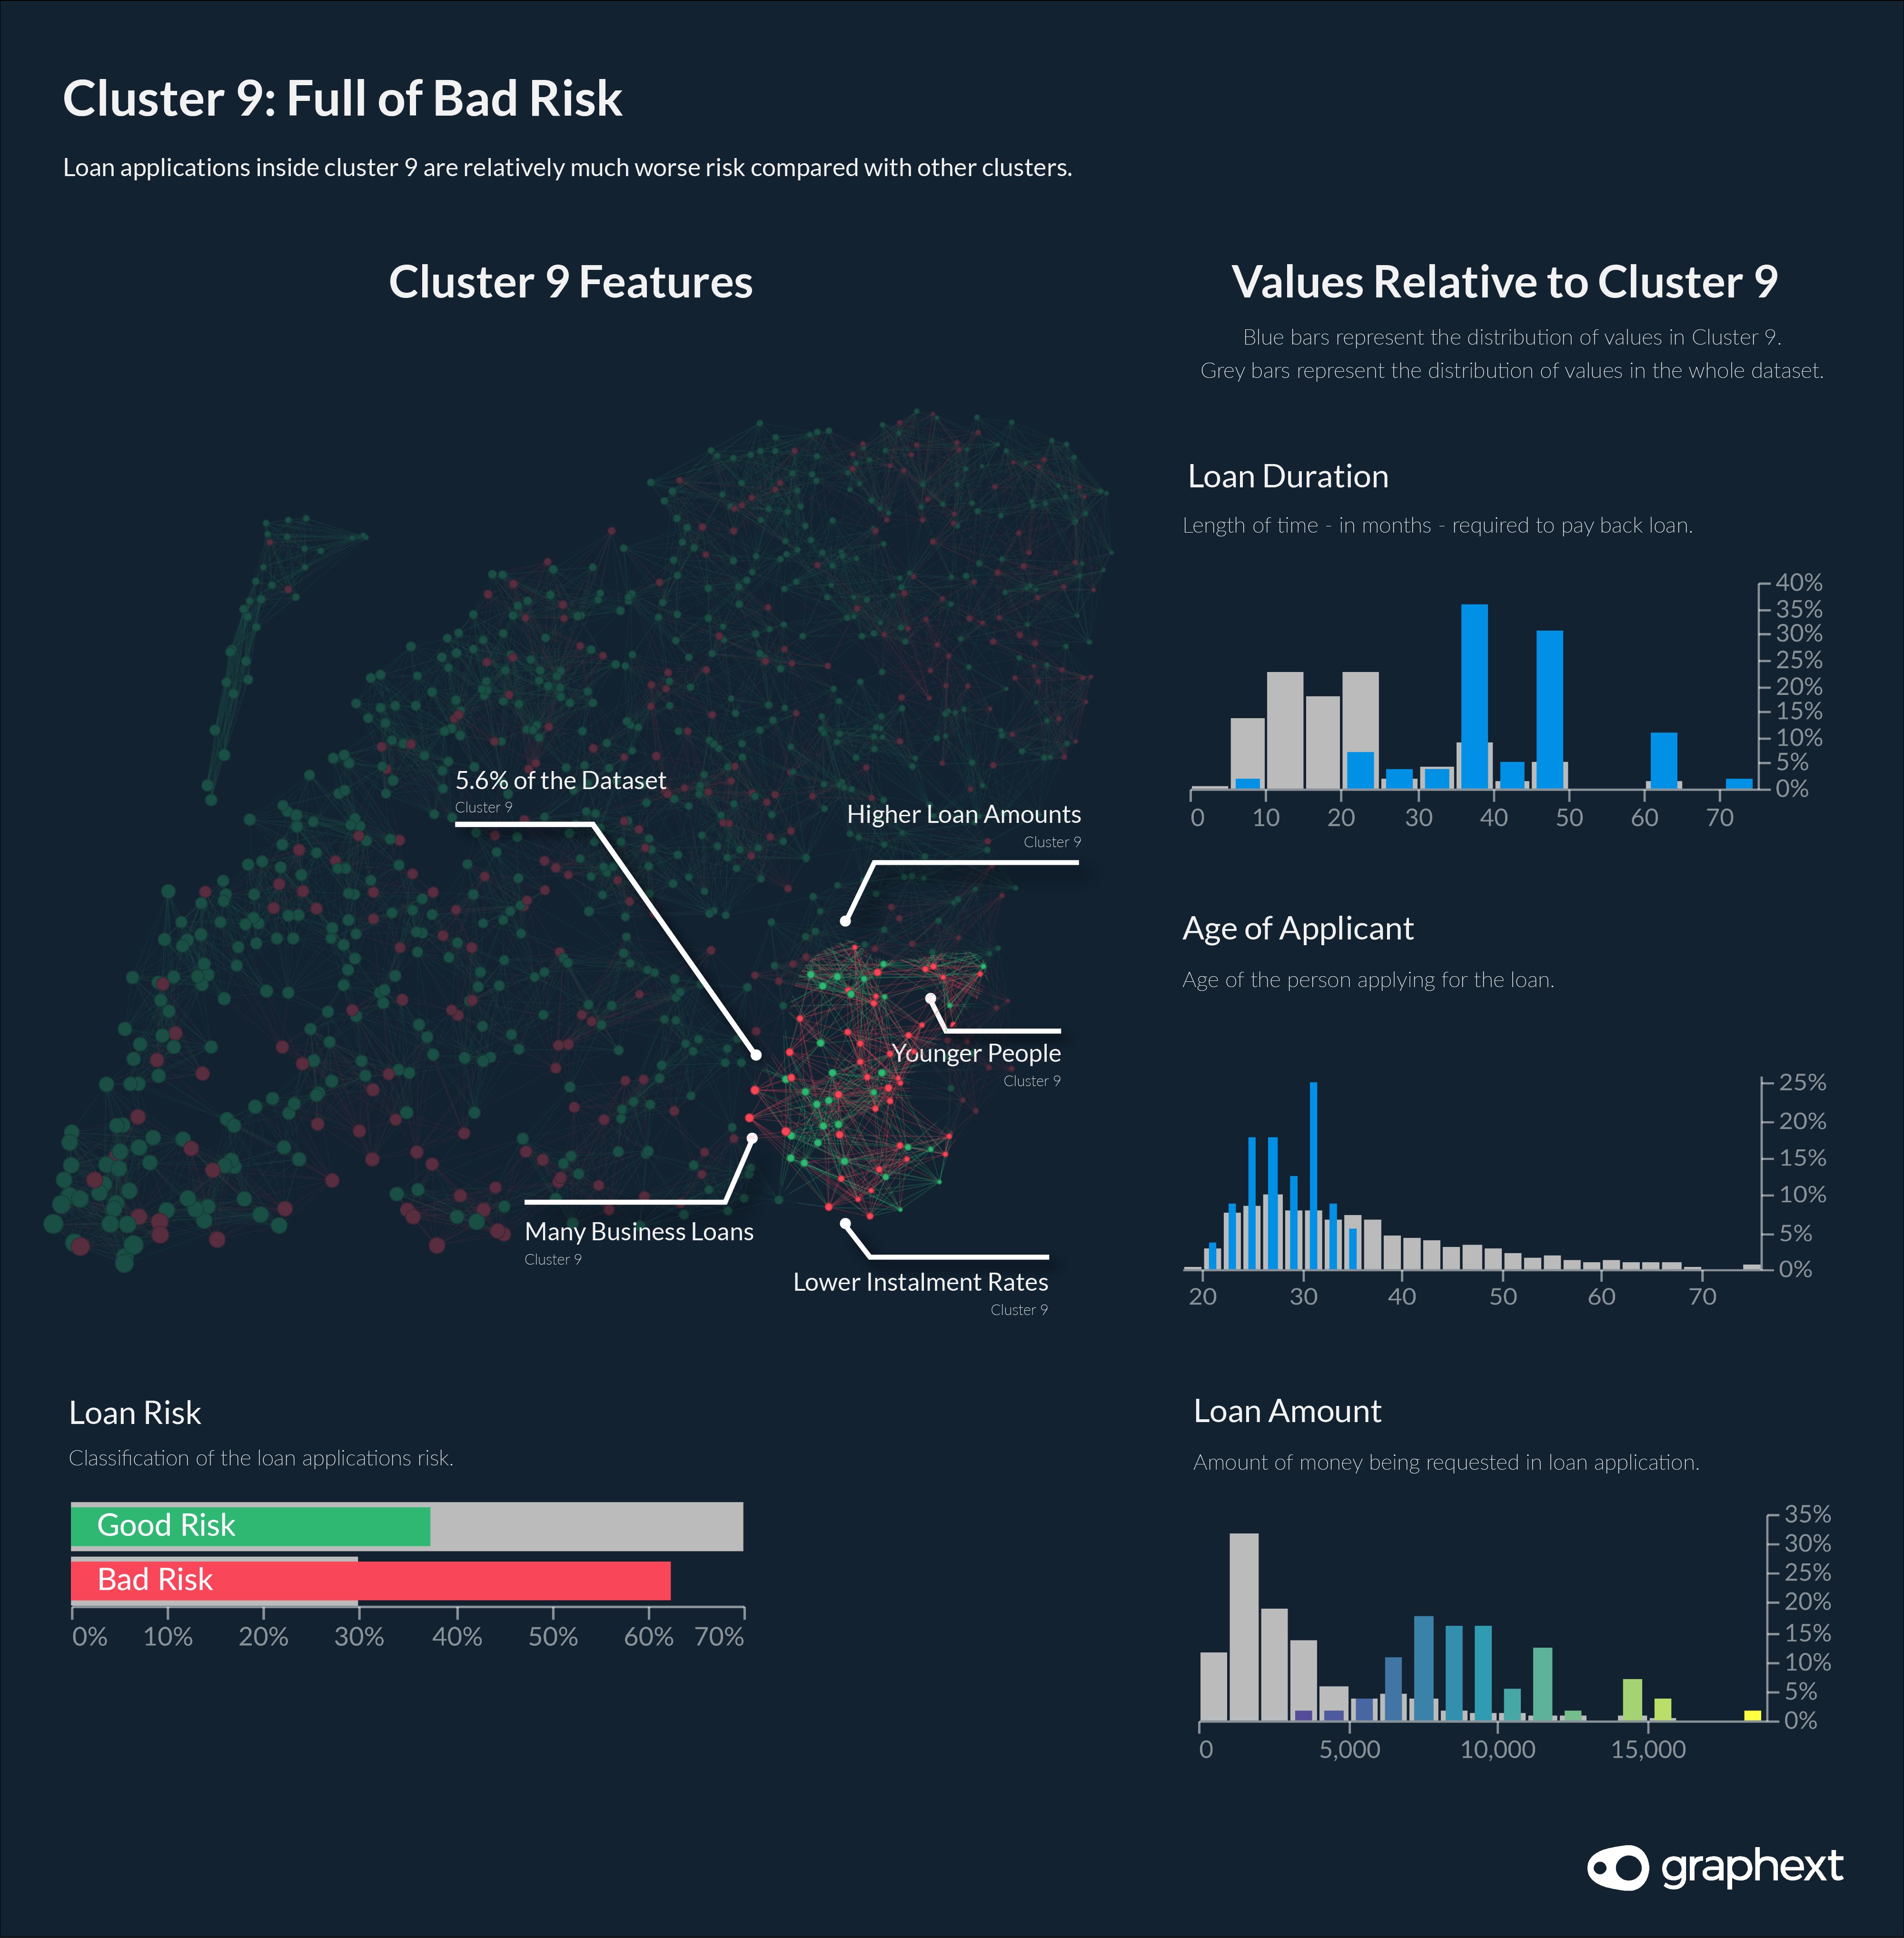 An infographic showing how values in cluster 9 - a bad risk cluster - are different to loan applications in the whole dataset.